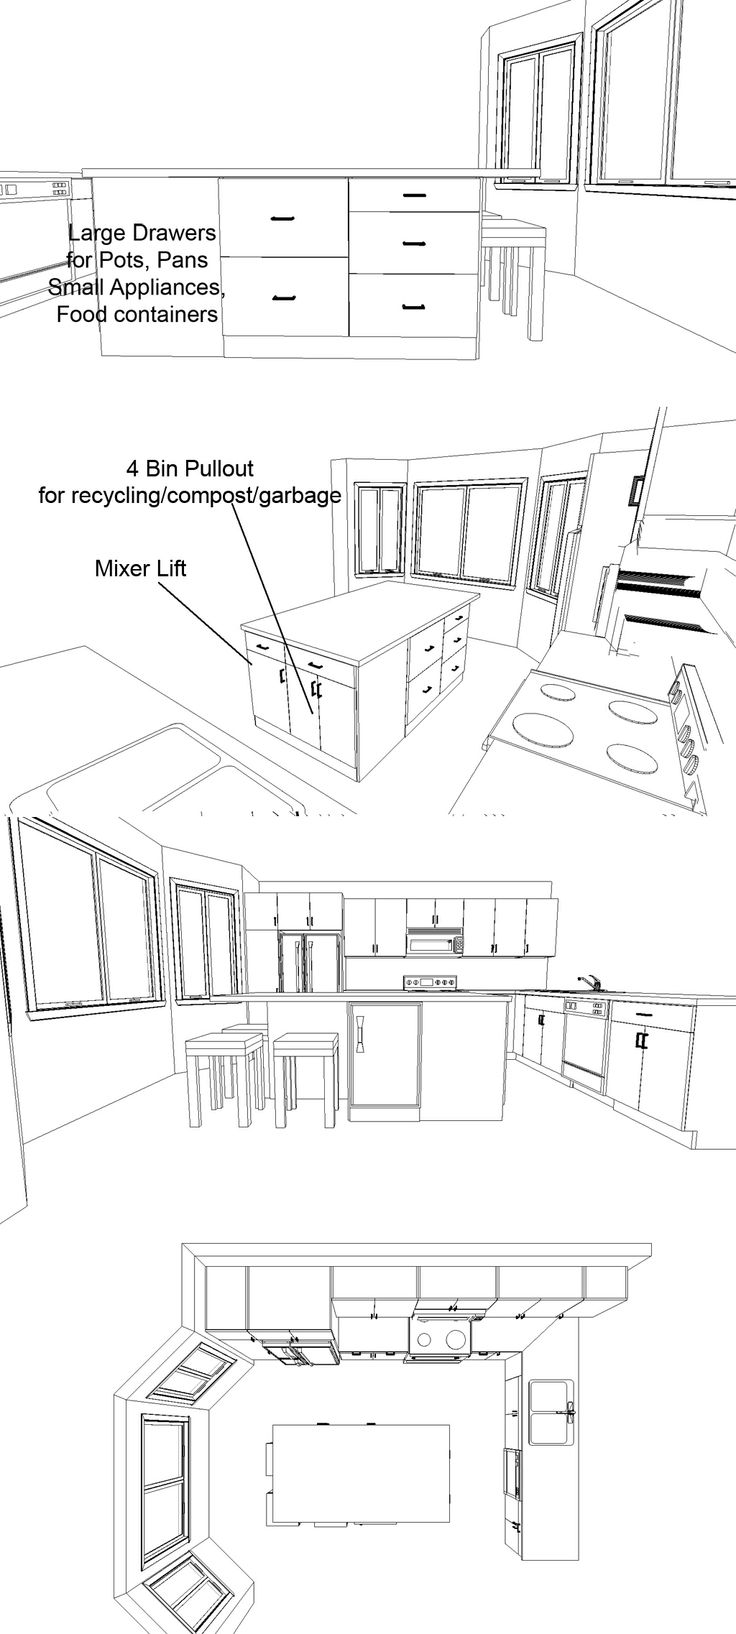 4 perspective views of possible island design with cabinets for mixer lift/waste…